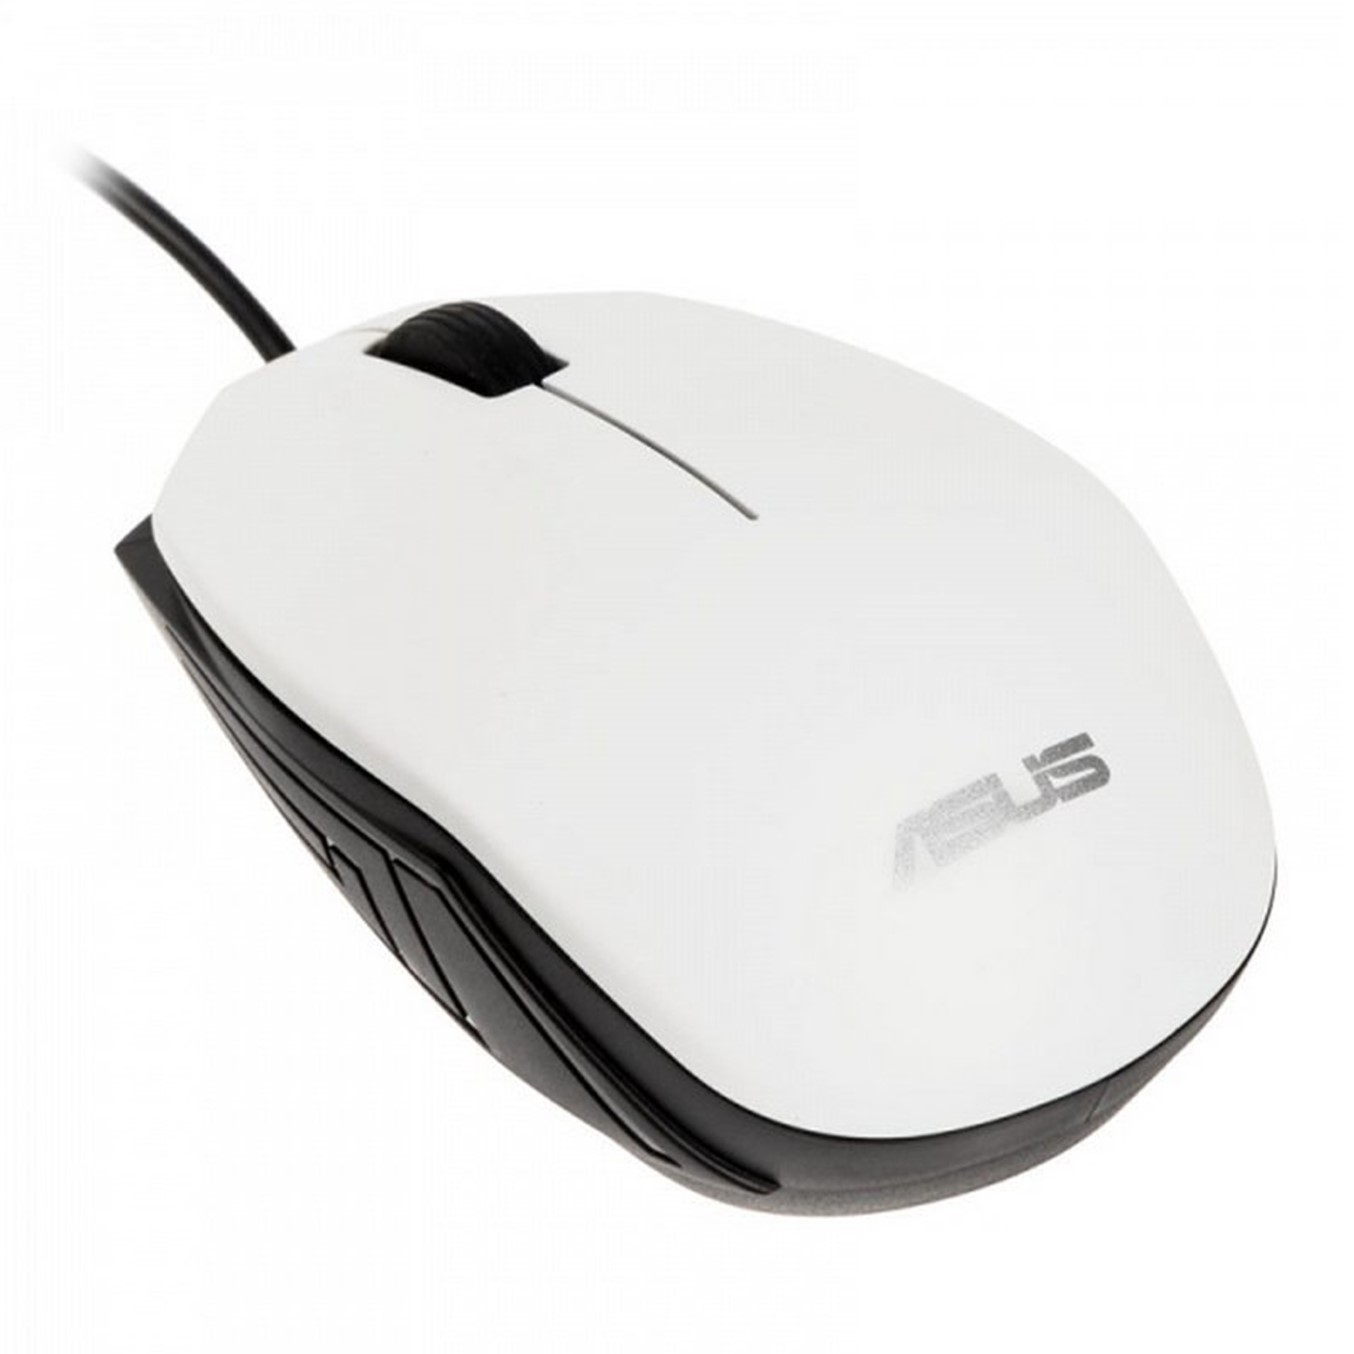 Mouse Raton Optico Asus Usb 2.0 1000 Dpi Blanco 0.0